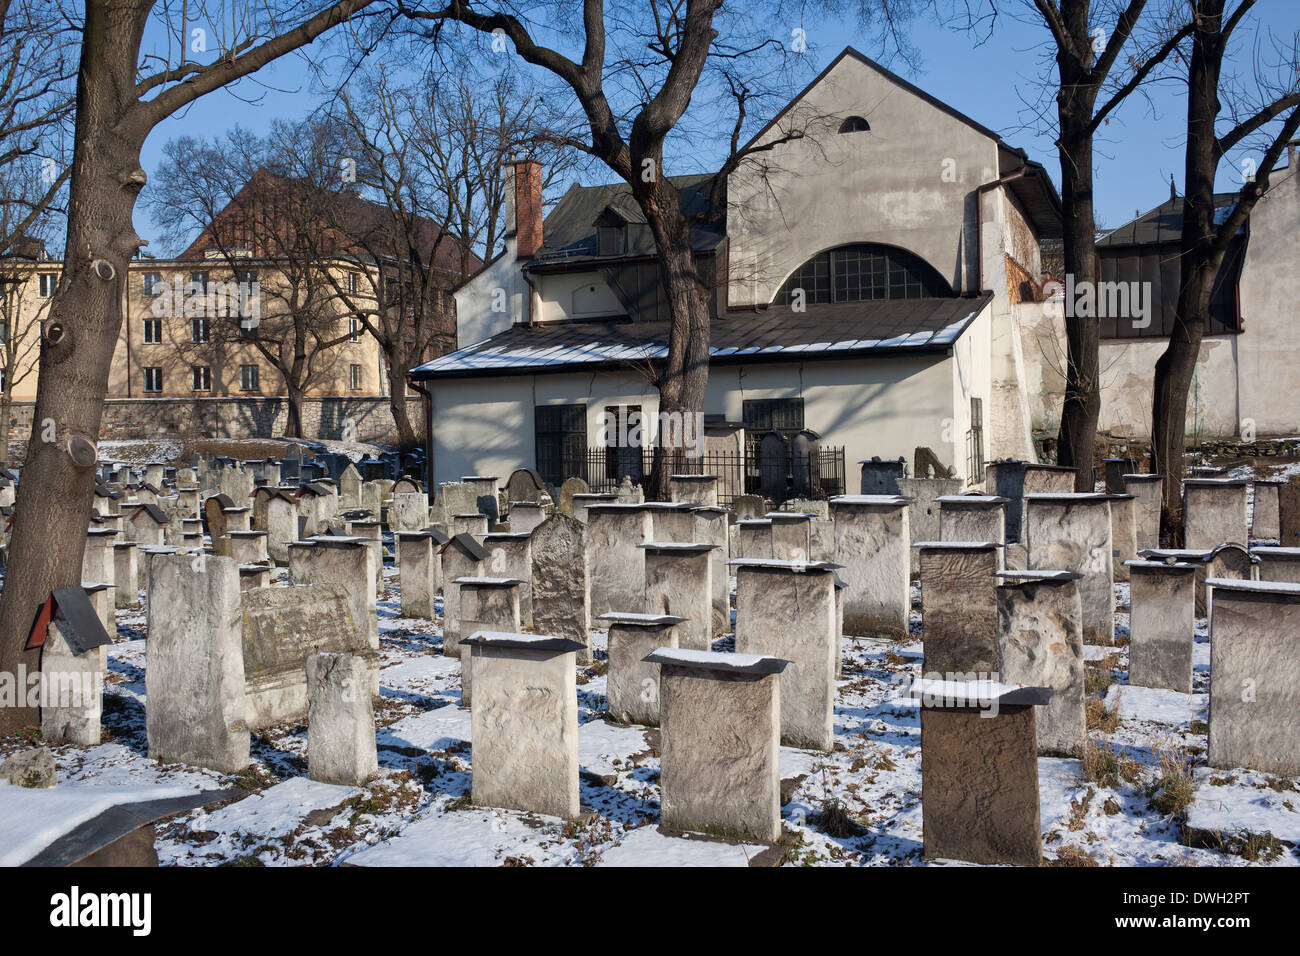 The old Jewish Remu'h cemetery and synagogue in the Kazimierz district in the city of Krakow in Poland - Stock Image